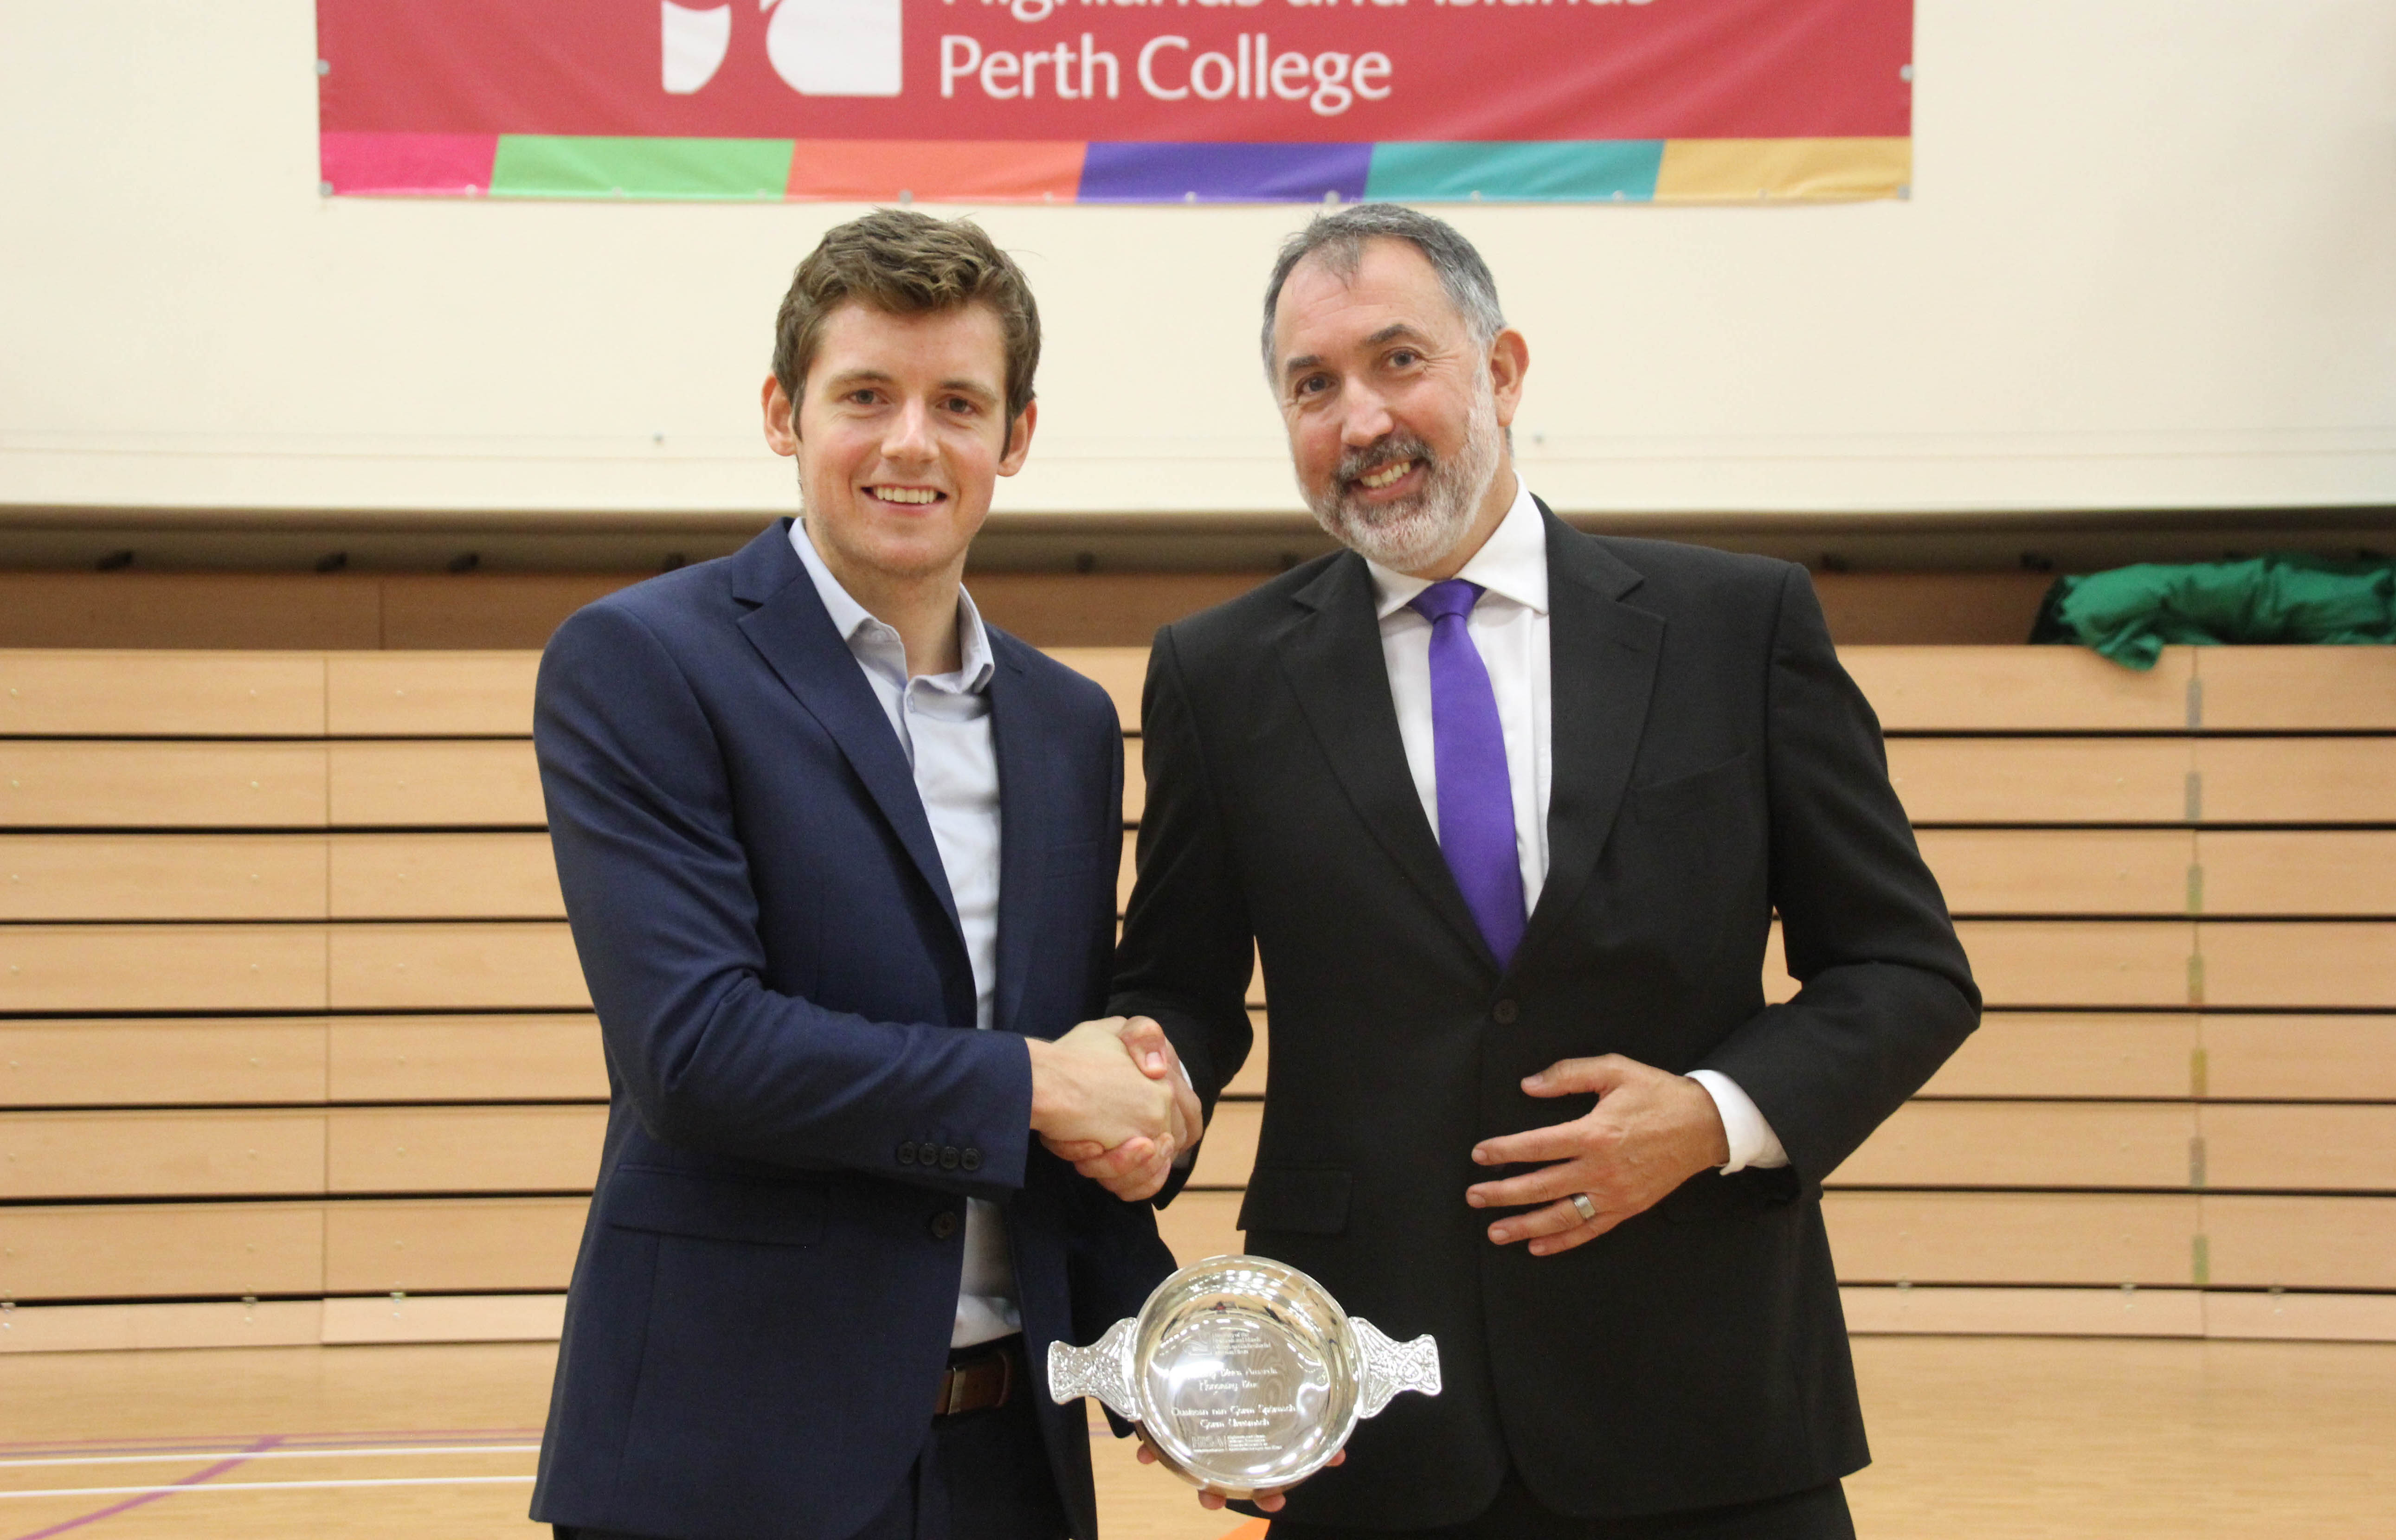 Media release: Squash player presented with university award